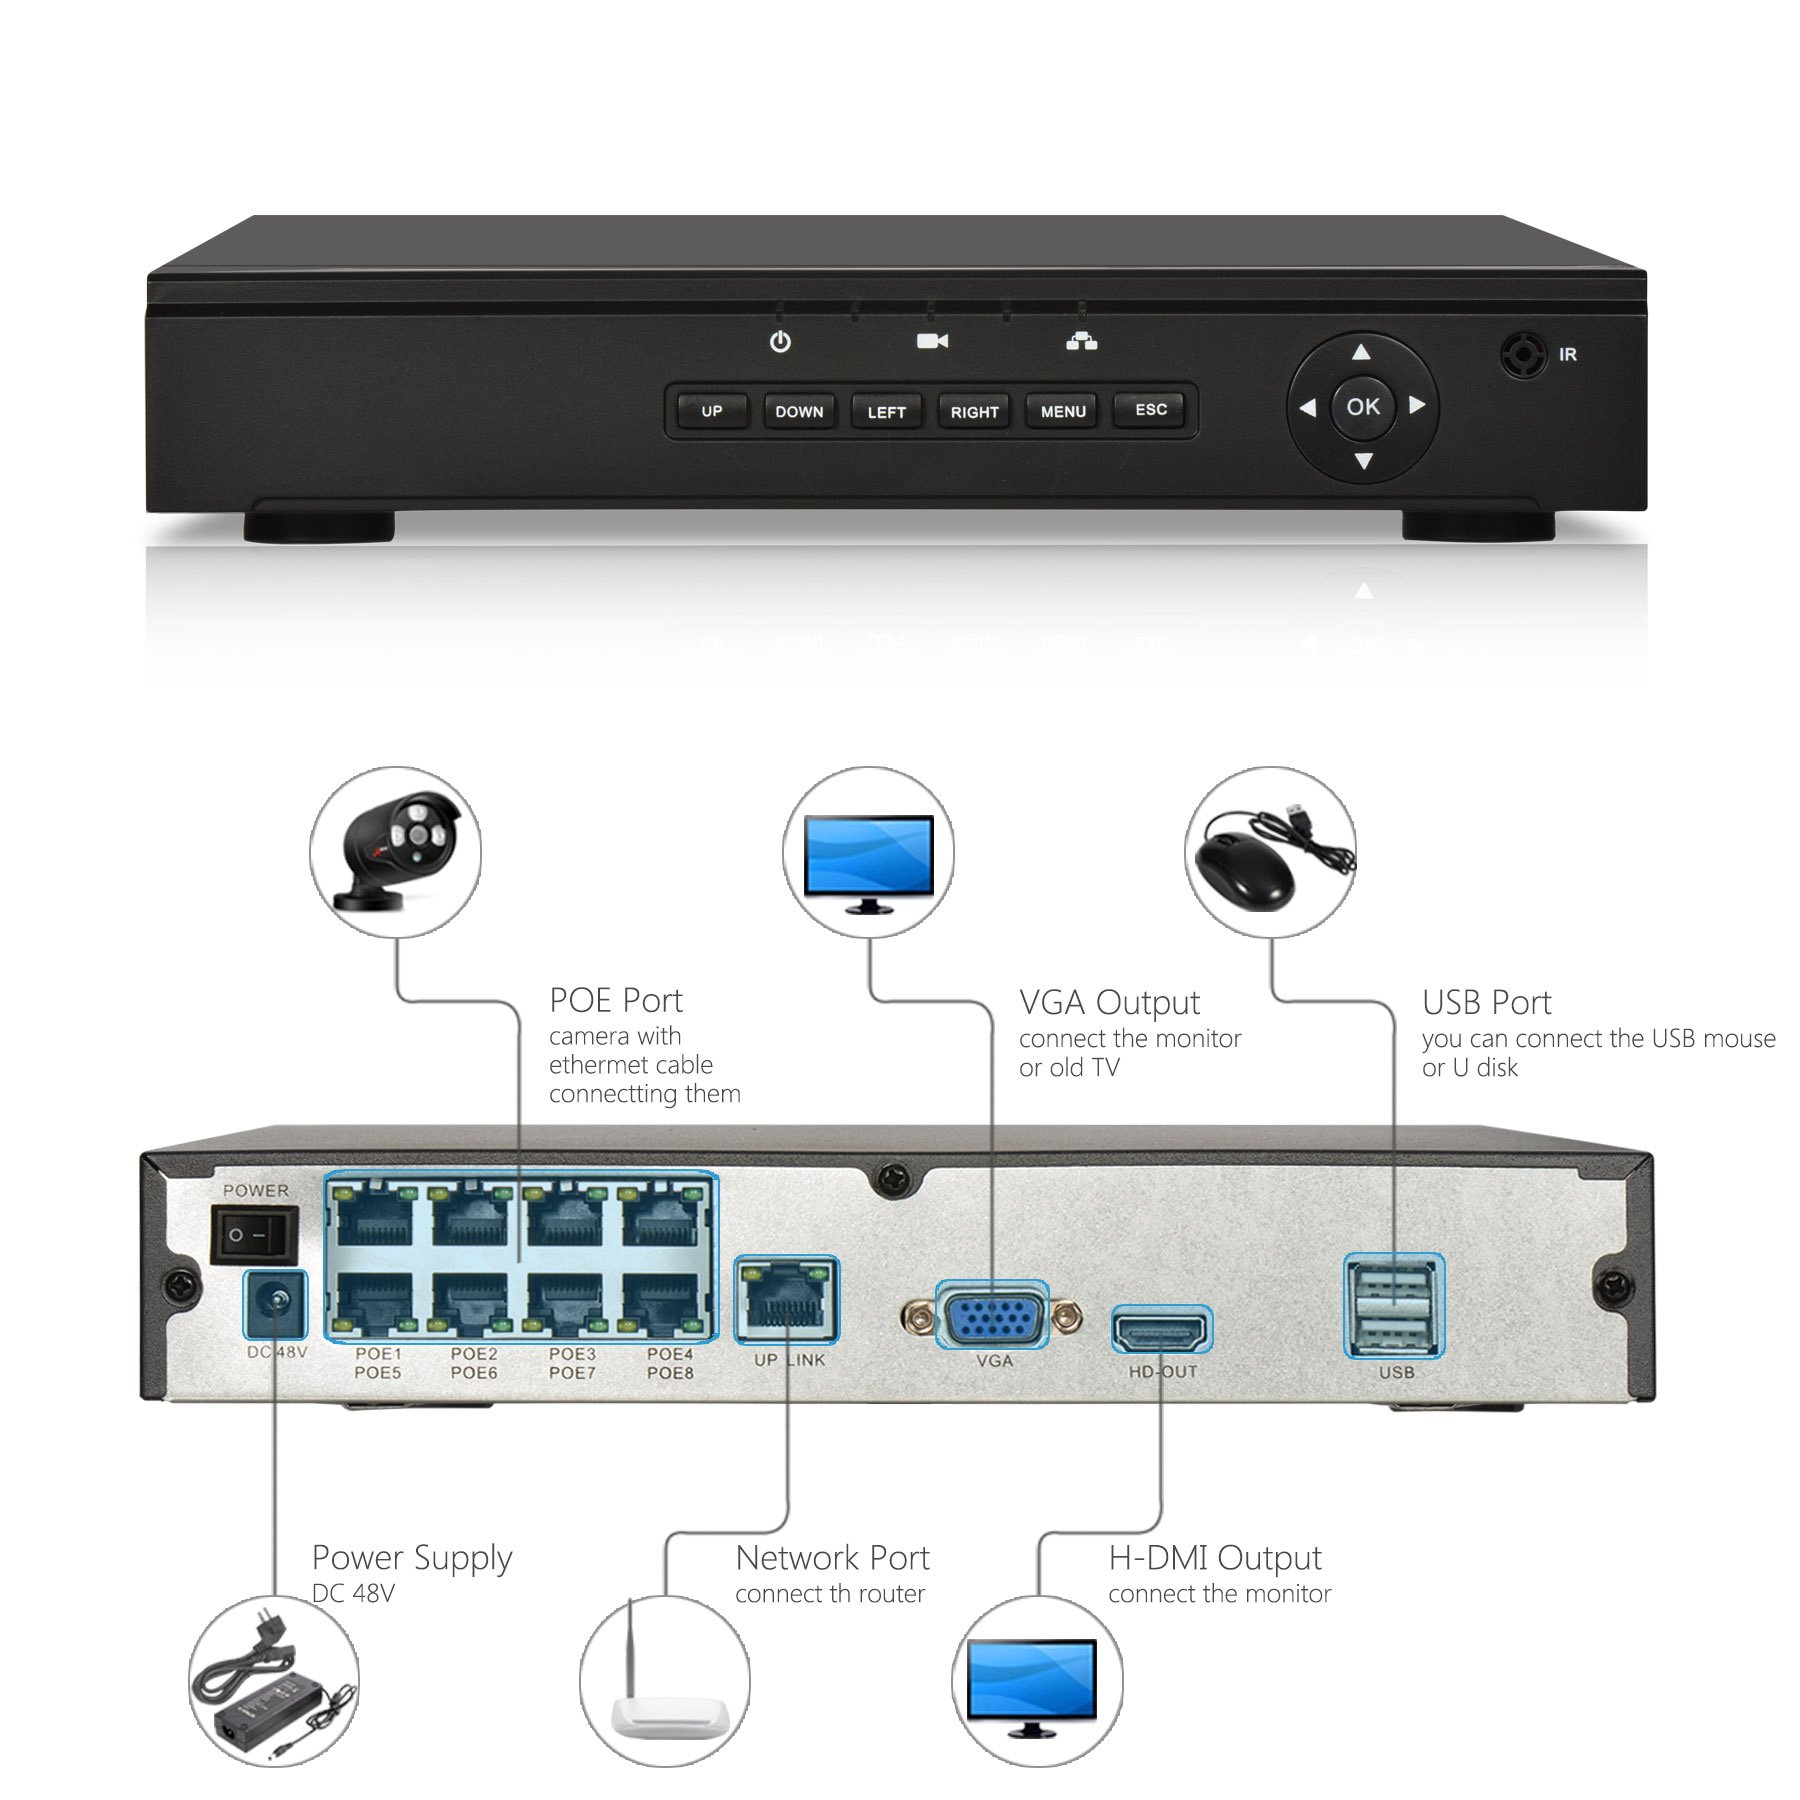 ANRAN 1080p Security POE (Power Over Ethernet) NVR Network Video Recorder Up to 8pc IP Network POE CCTV Camera and 4TB HDD (Not Included),Plug & Play setup, Easy to Configure, Access and Control by ANRAN (Image #3)